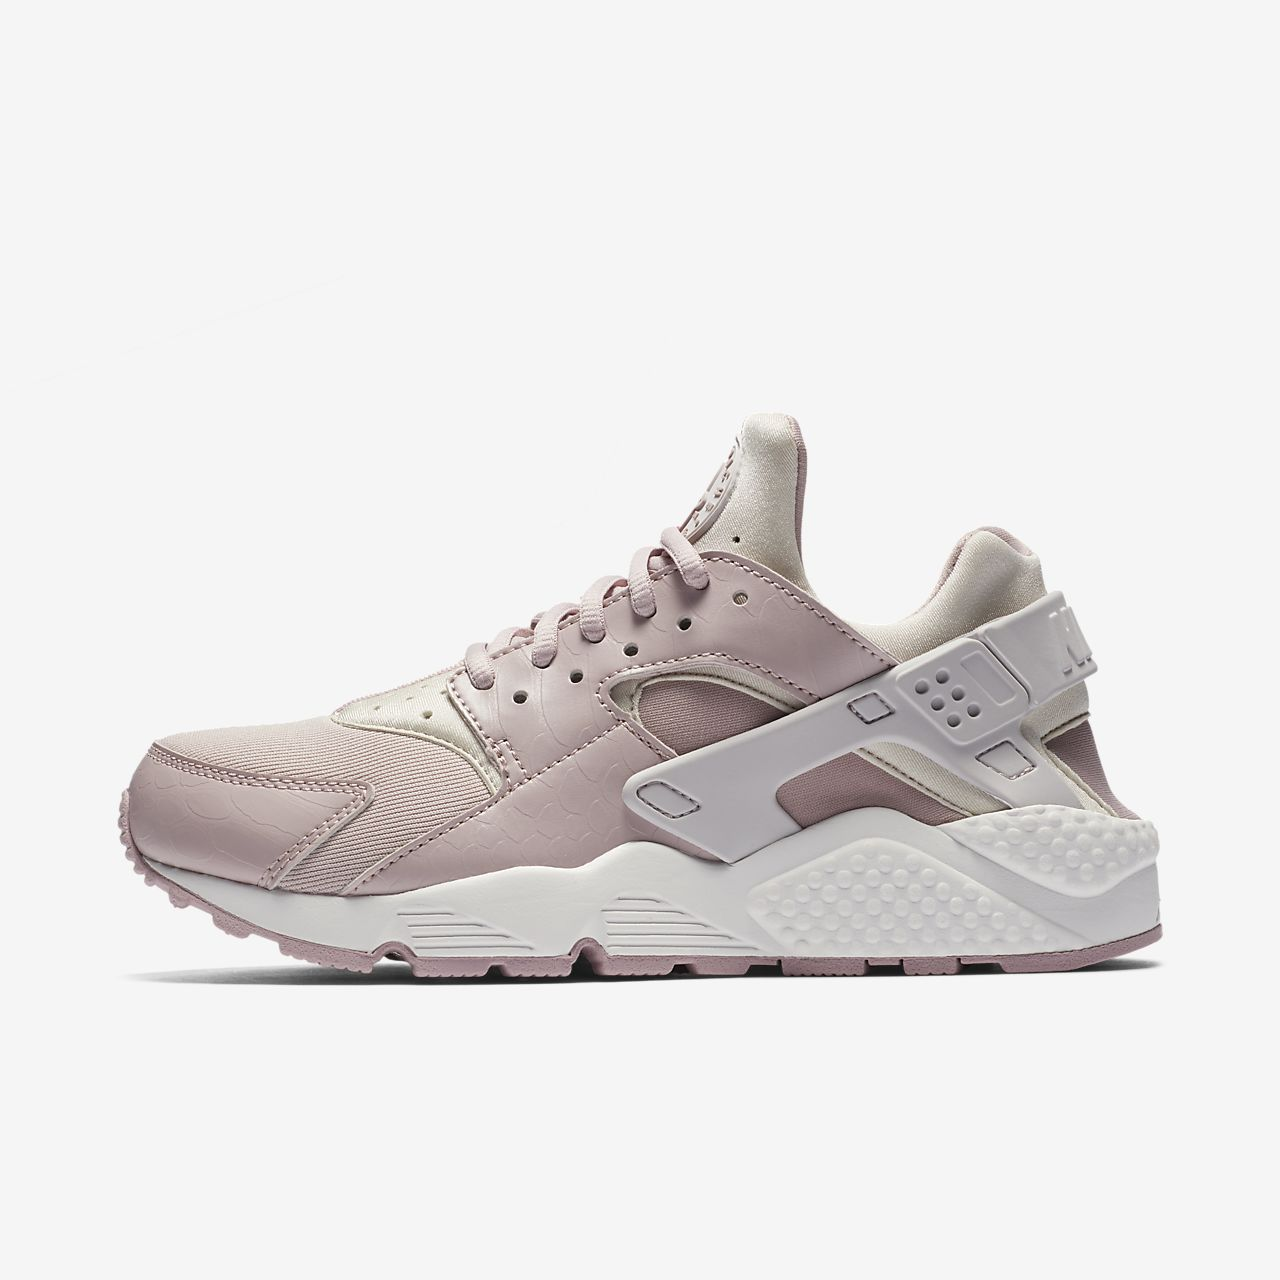 Nike Air Huarache Id Shoe